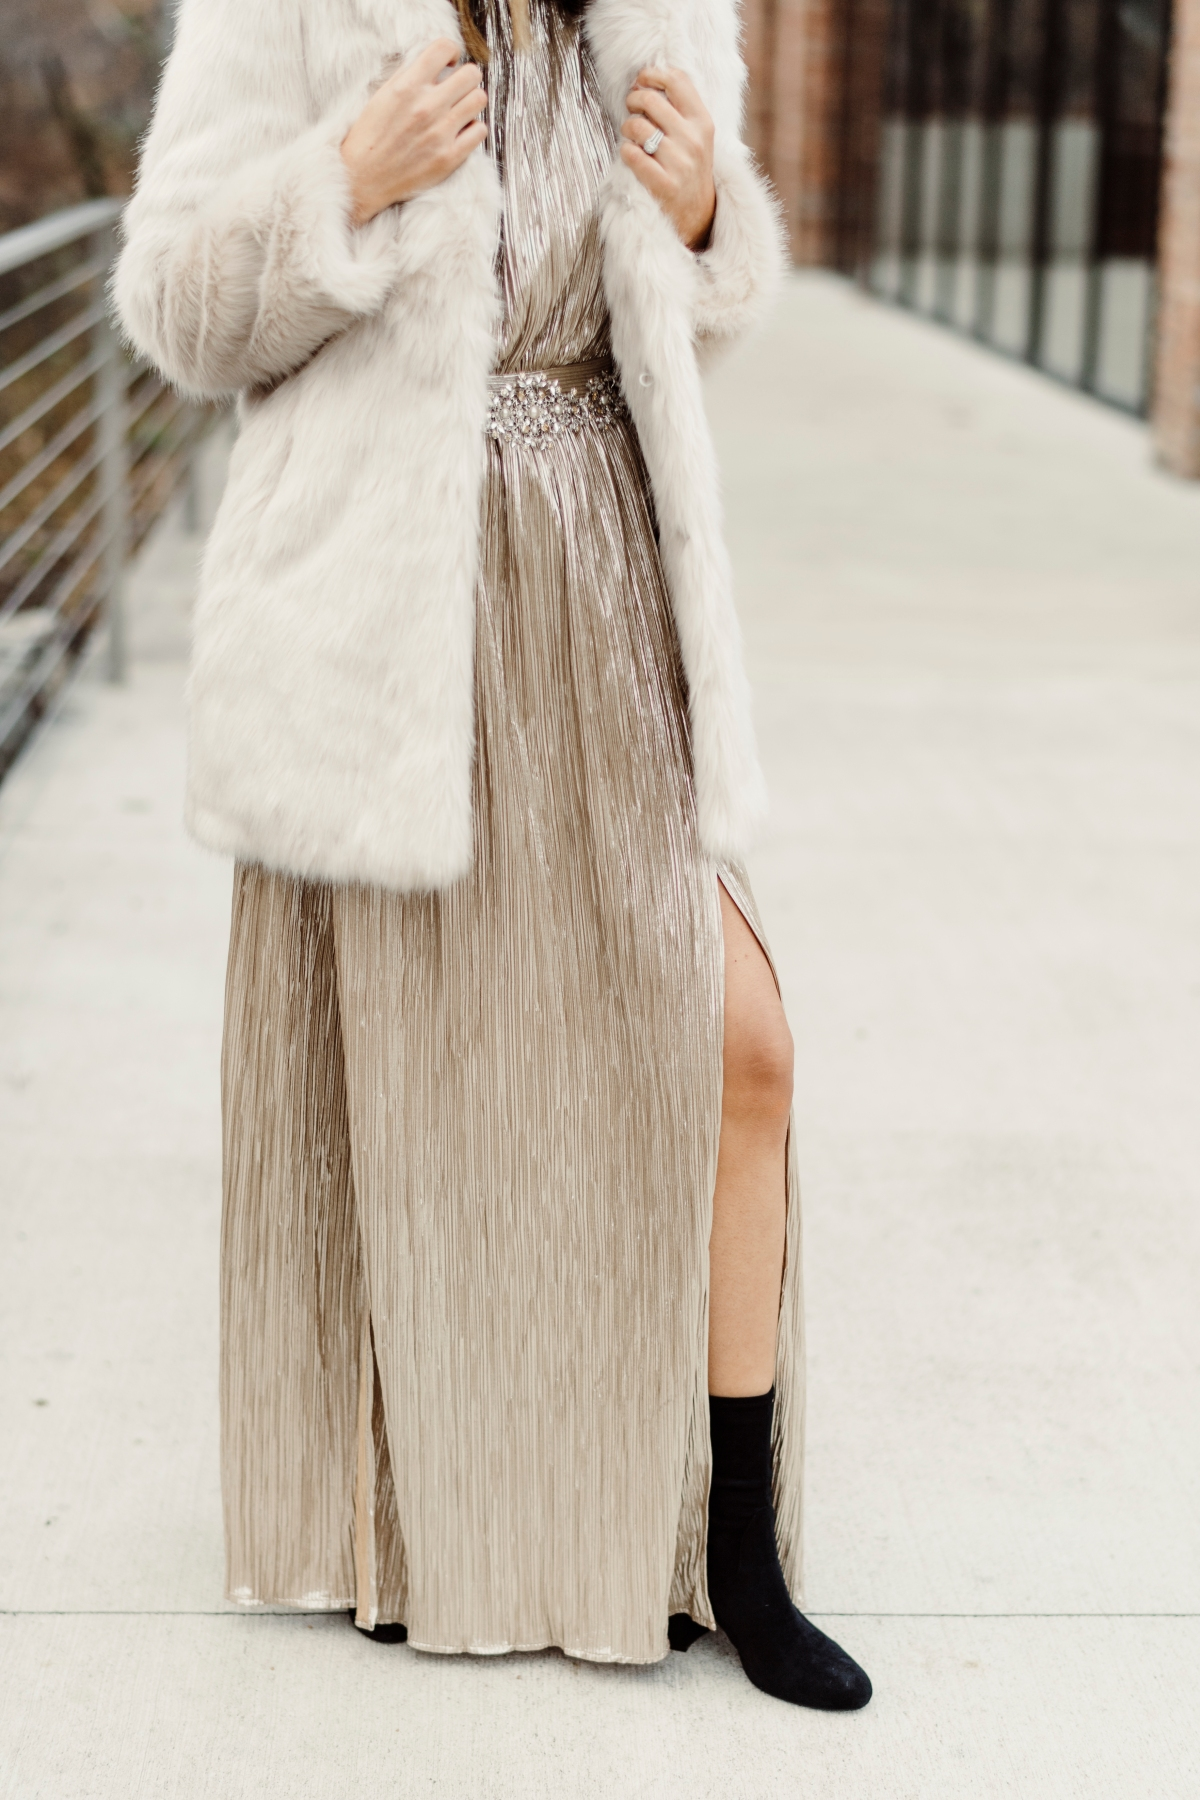 gala-affordable-glam-faux-fur-edgy-city-street-style-fashion-lux-luxury-budget-friendly-NYC-NYE-new-years-eve-holiday